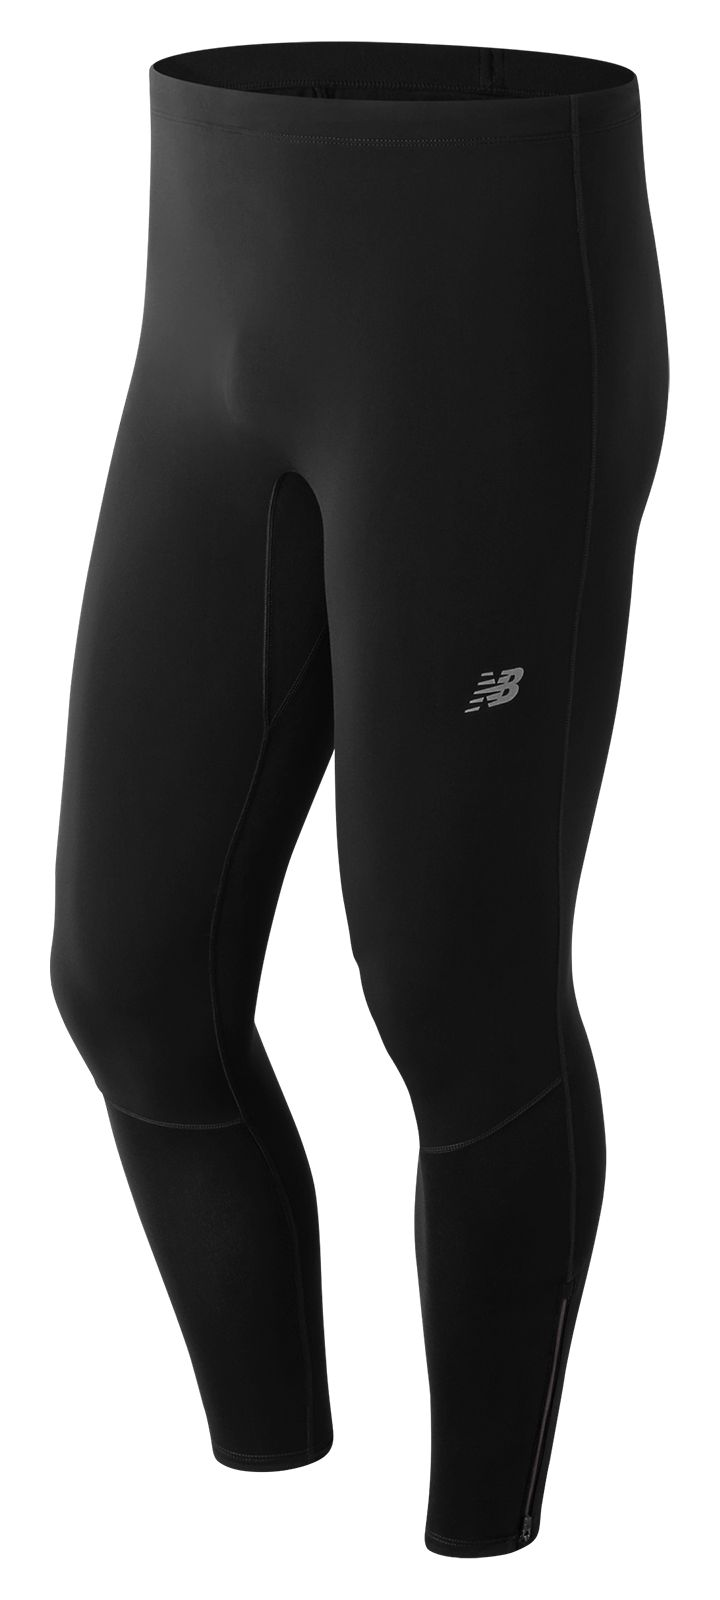 New Balance : NB Heat Tight : Men's Apparel Outlet : MP63221BK